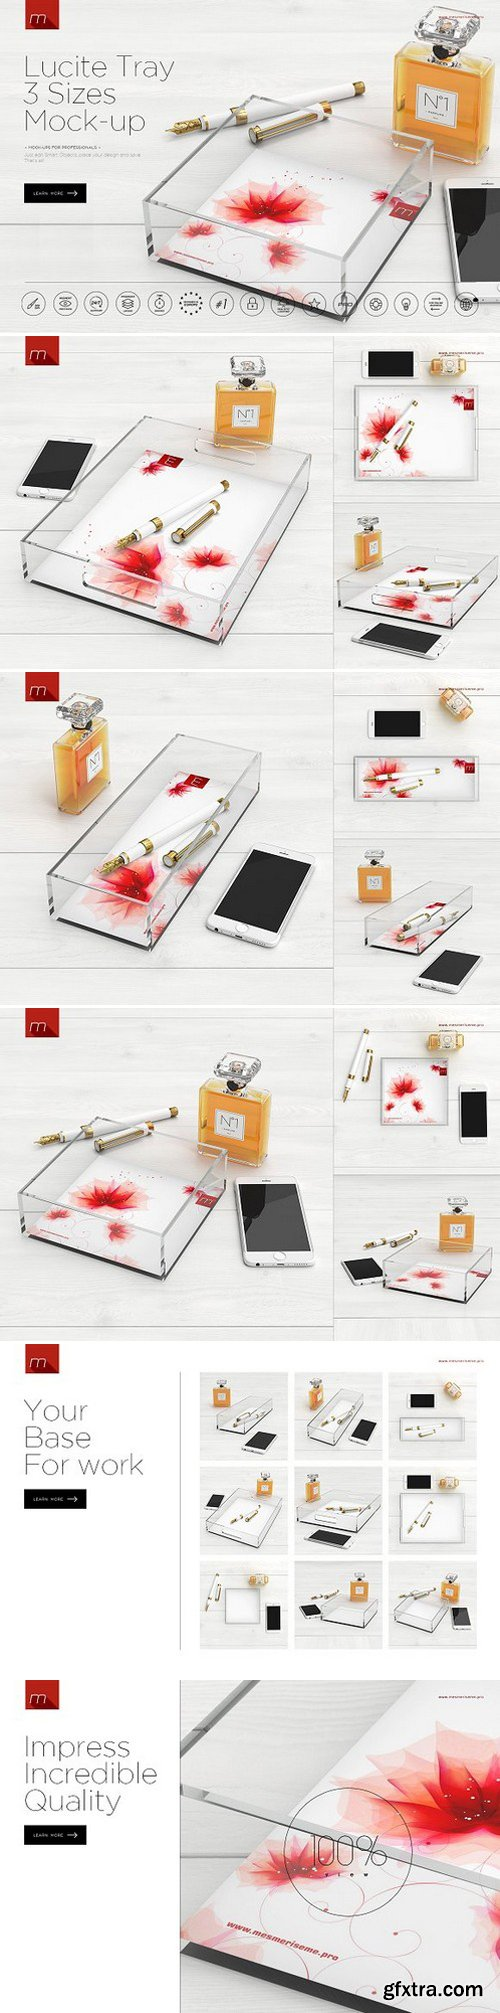 CM - Lucite Tray 3 Sizes Mock-up 1052337